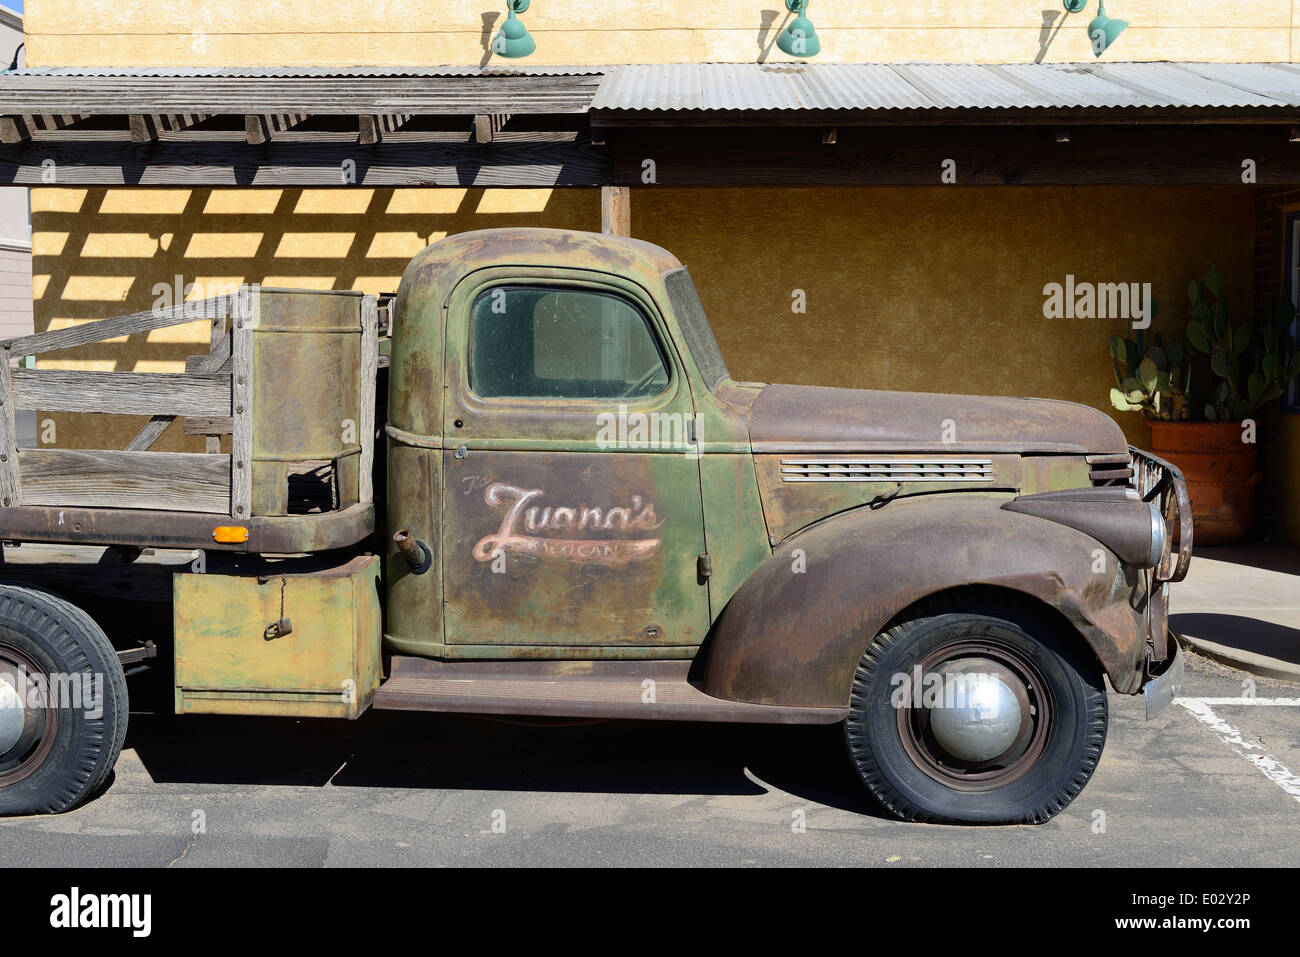 Vintage Chevrolet American flatbed truck Stock Photo, Royalty Free ...